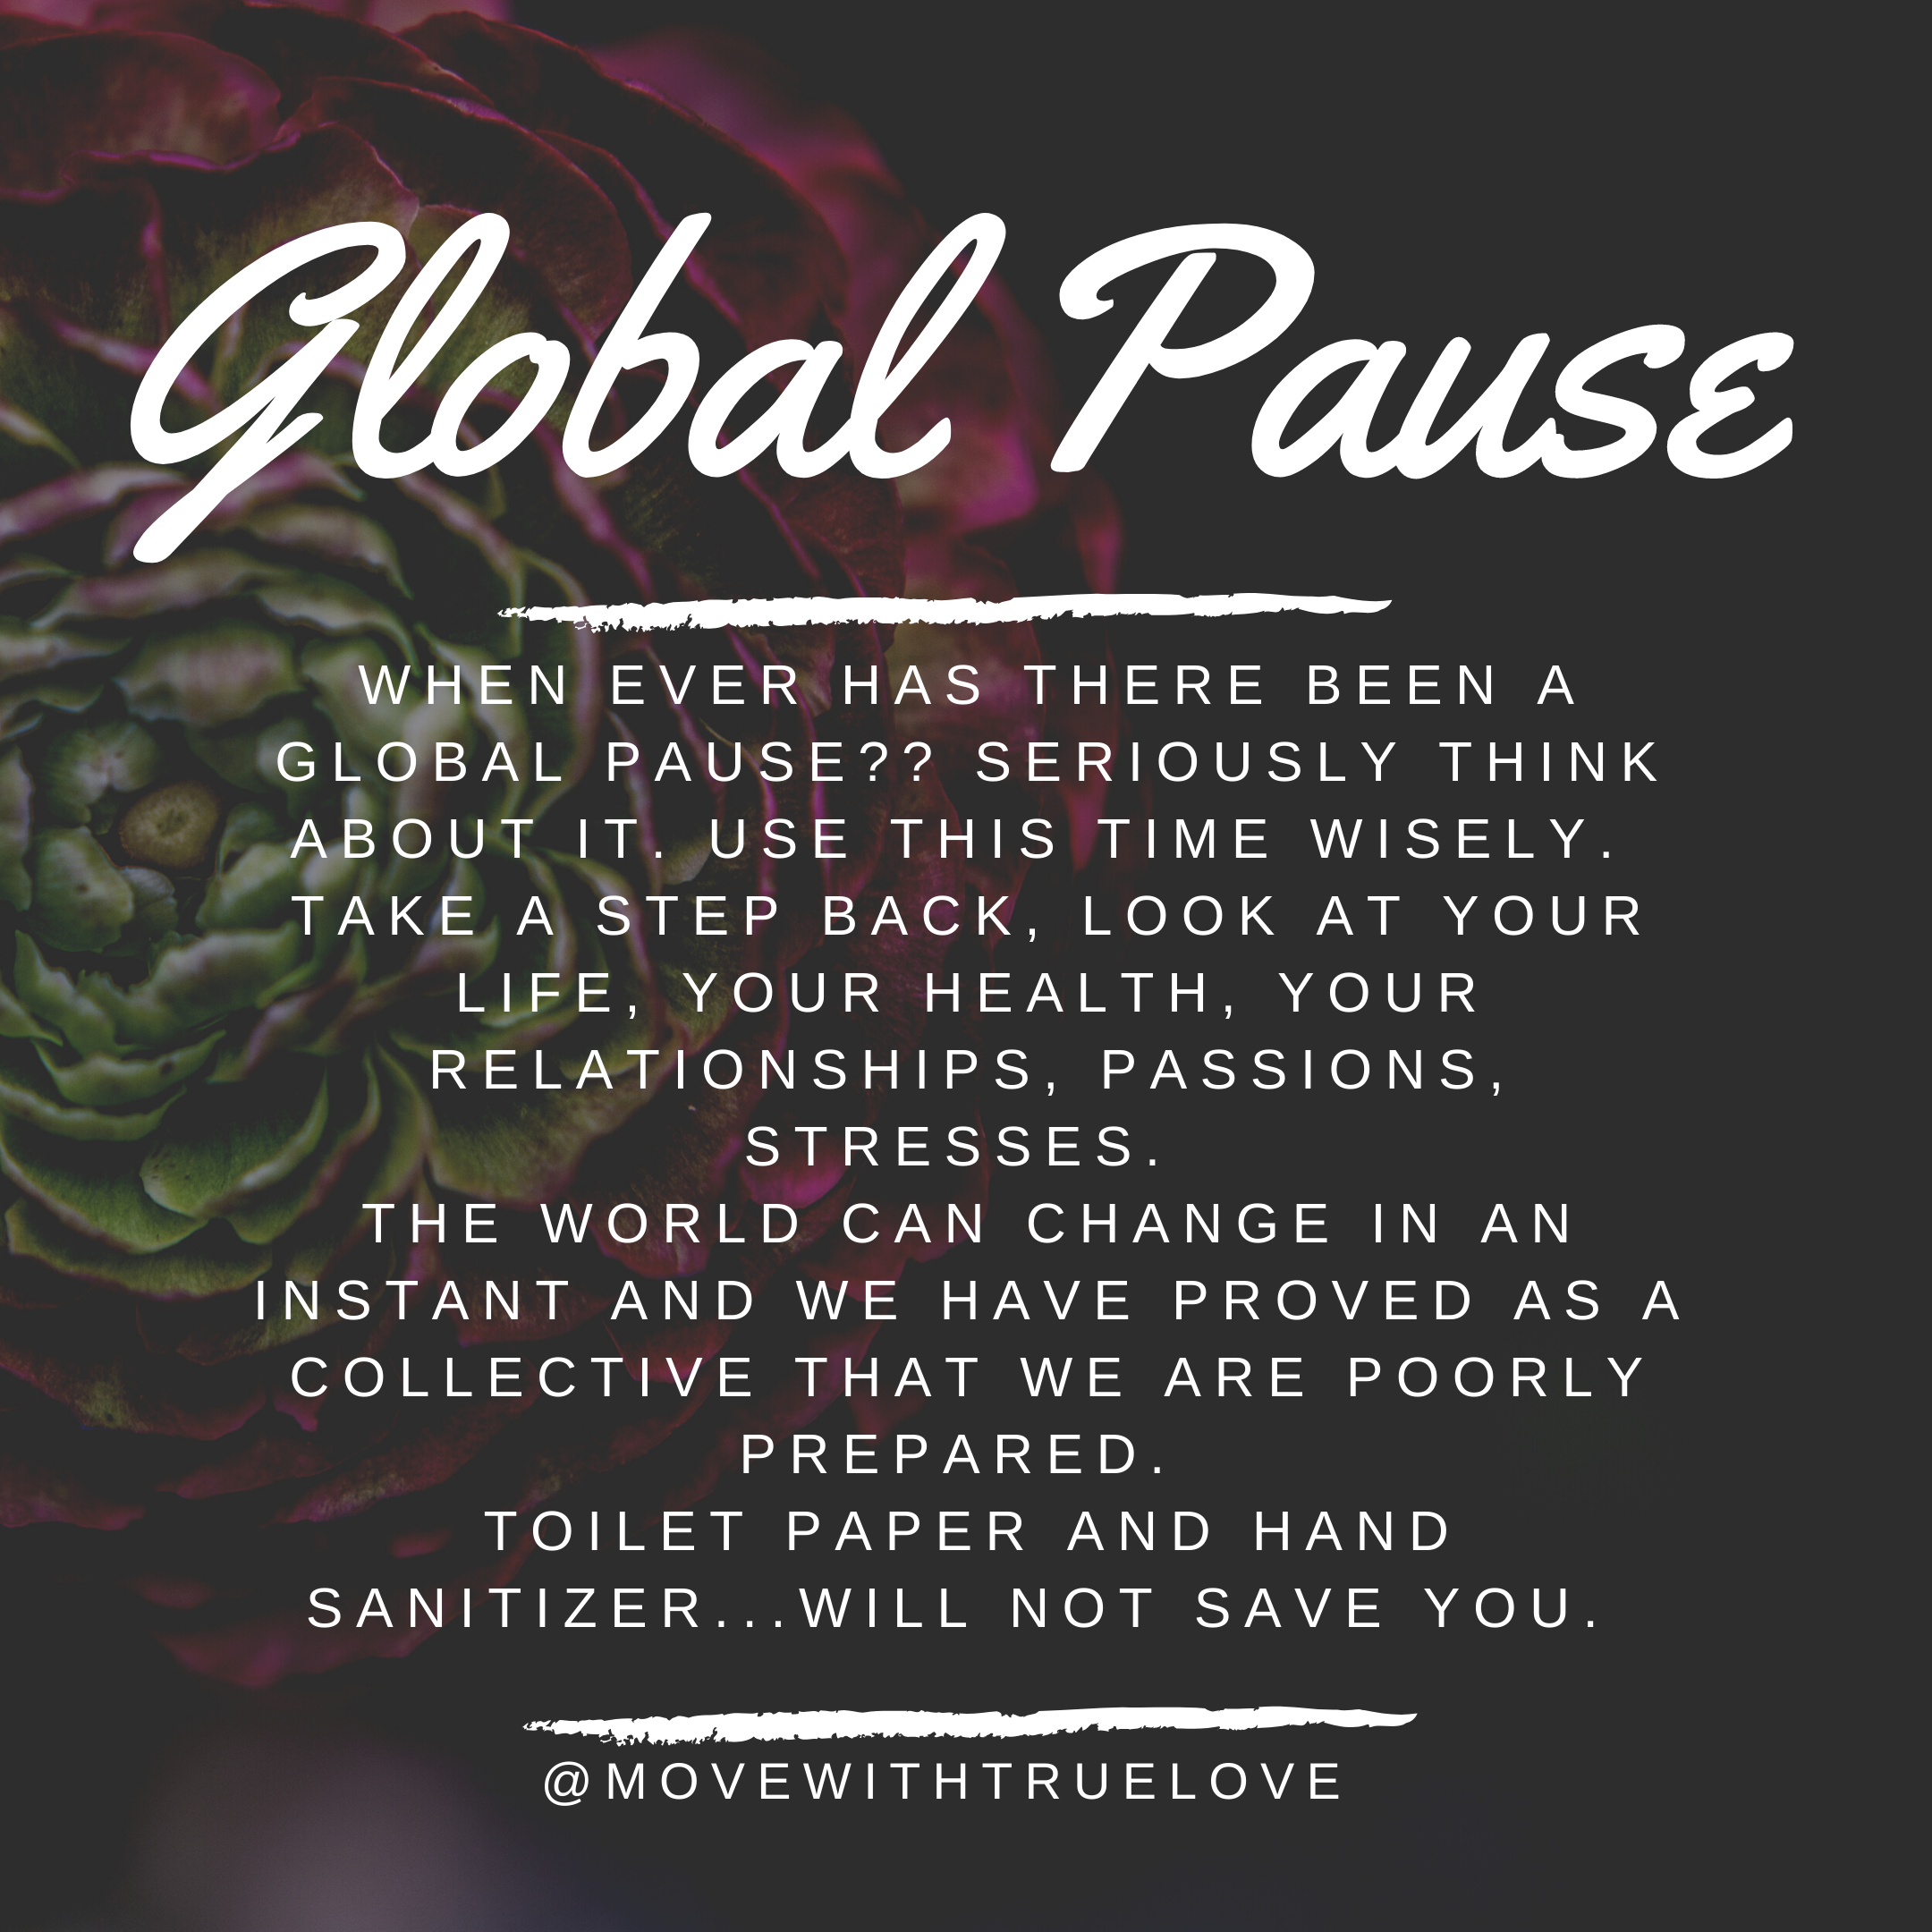 Global Pause